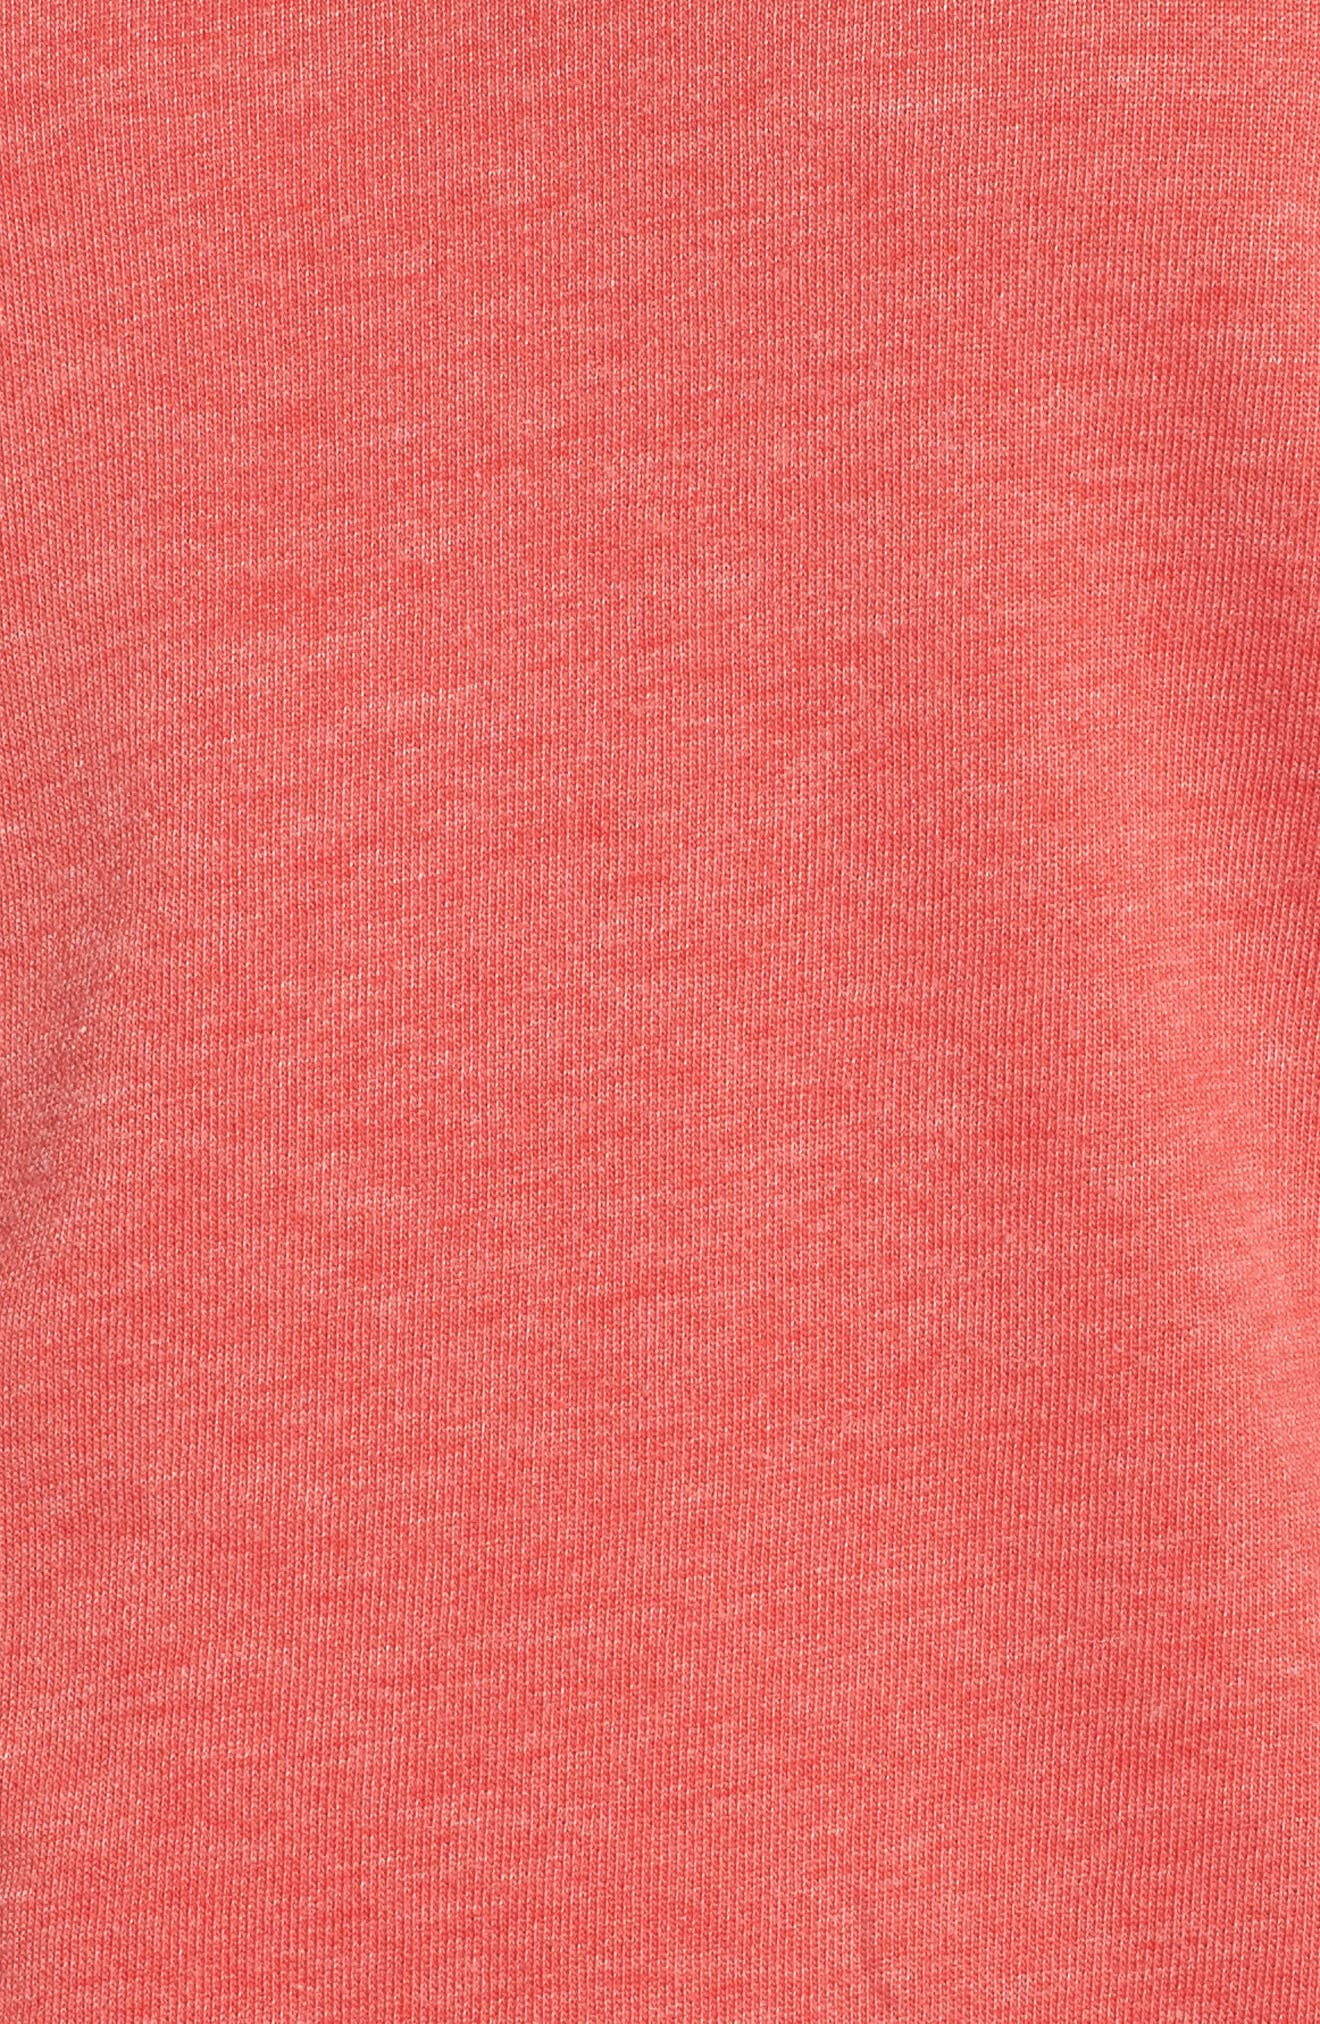 Lazy Day Sweatshirt,                             Alternate thumbnail 5, color,                             600